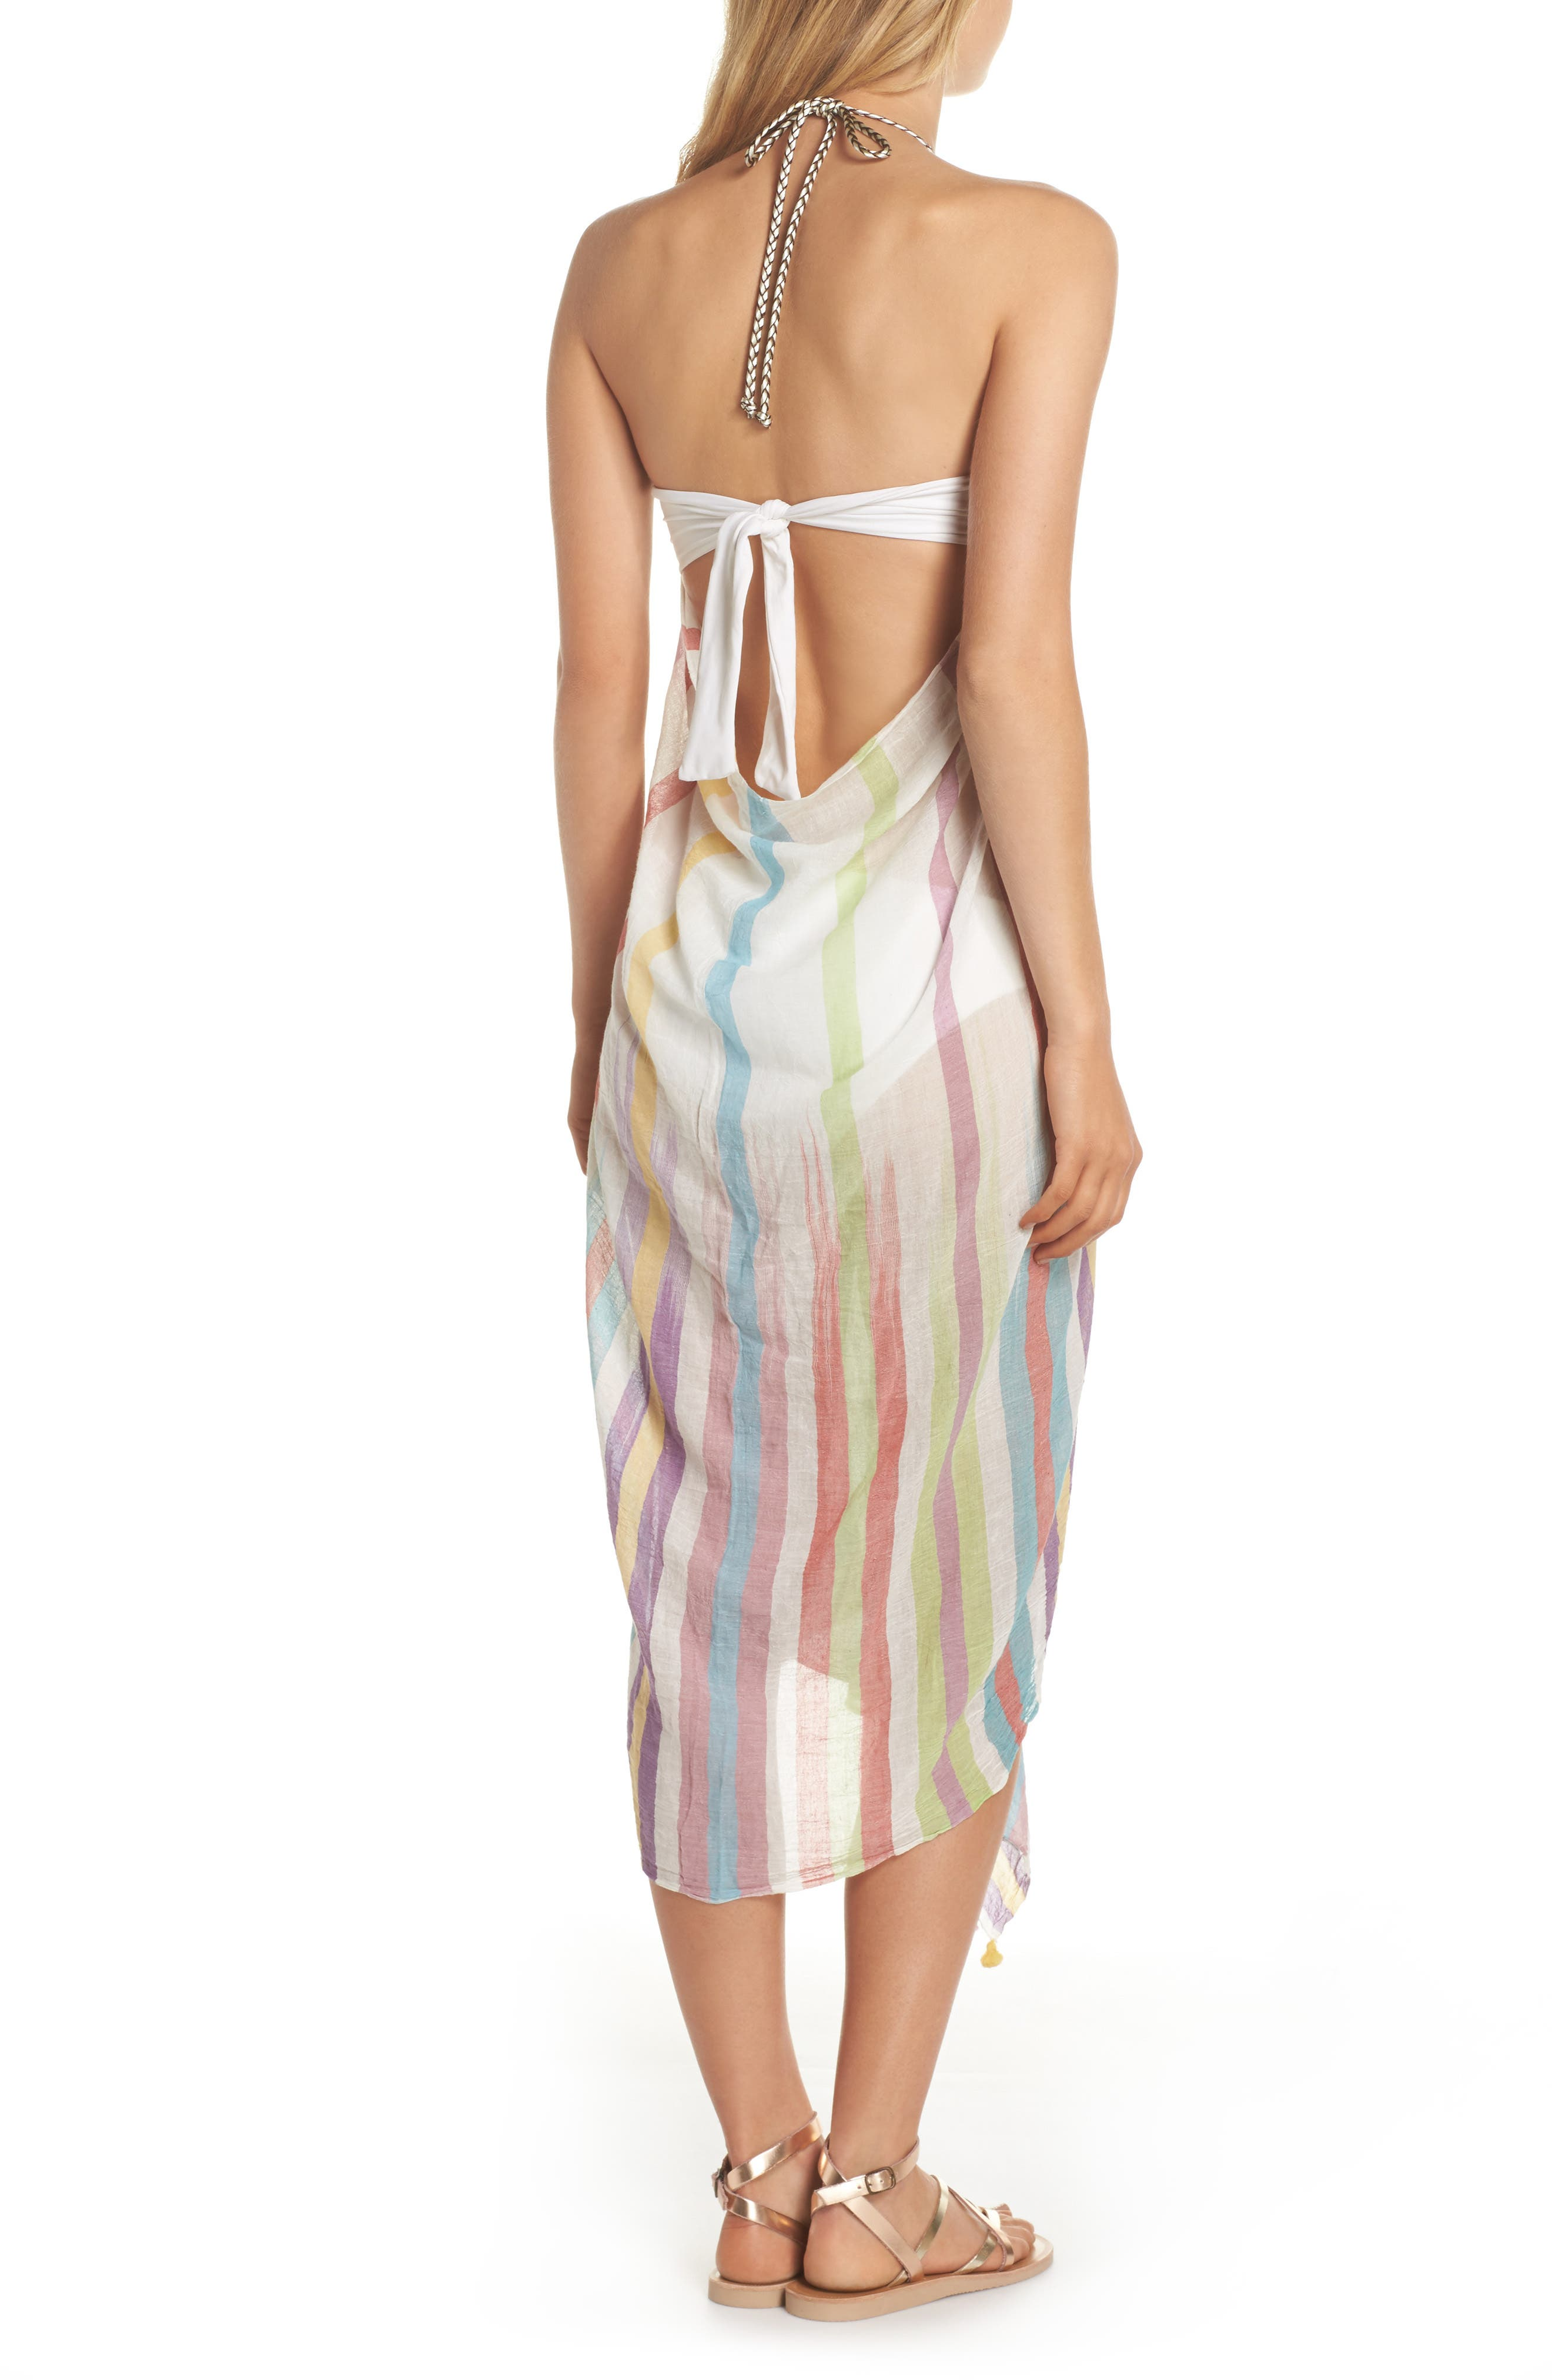 Pool Party Beach to Street Cover-Up Dress,                             Alternate thumbnail 2, color,                             Rnb